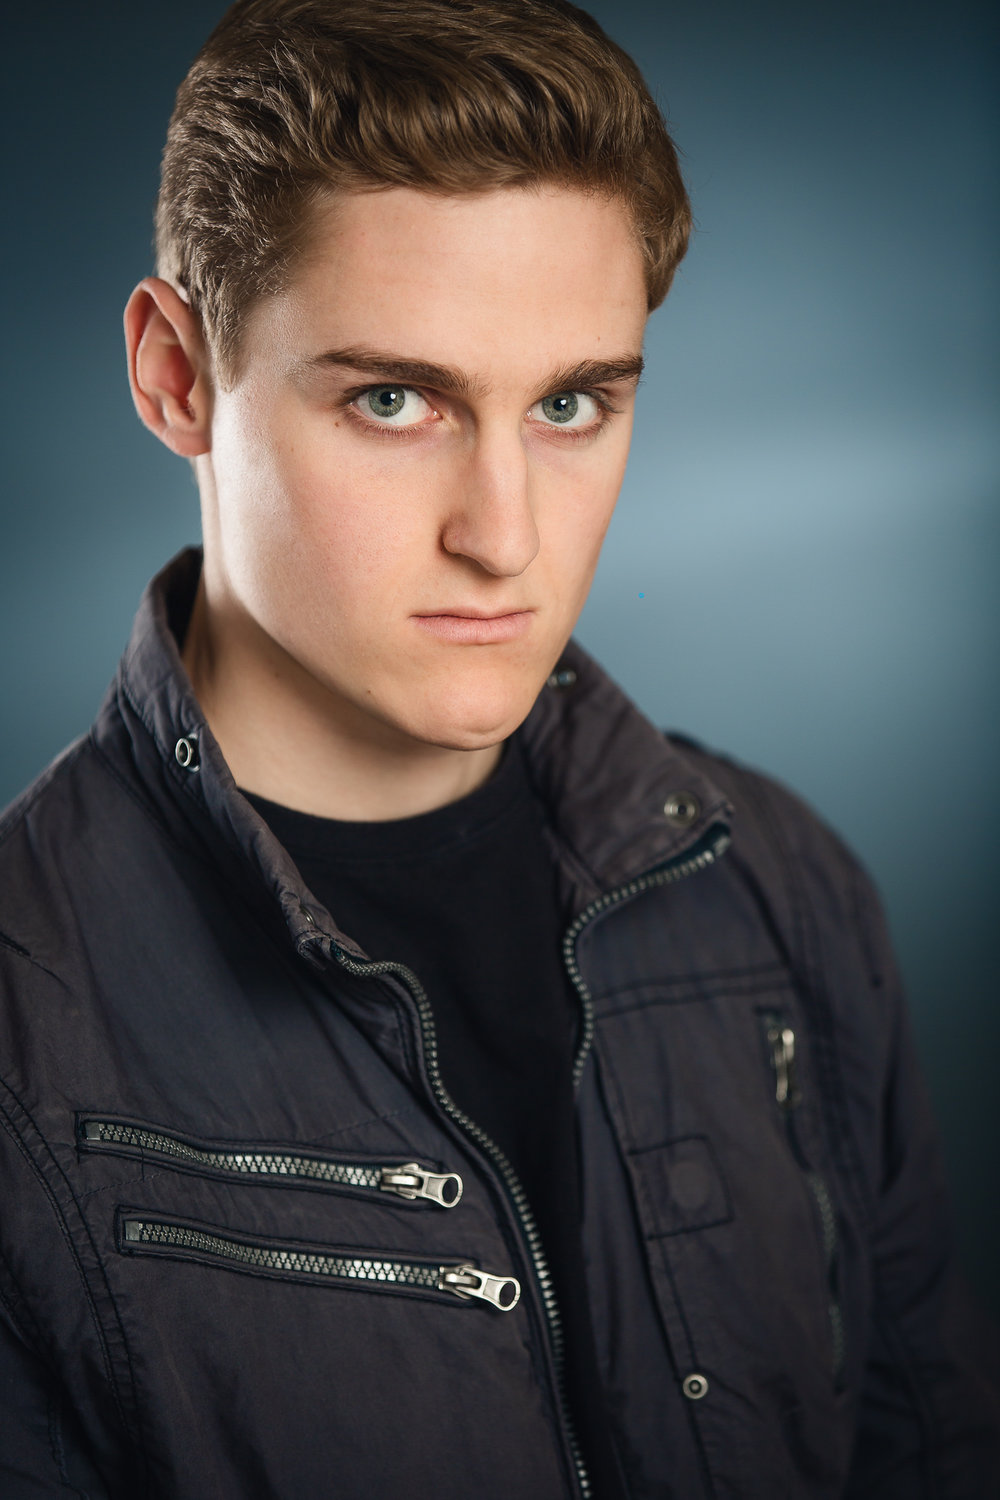 Blake Eaton Headshots_044-Edit-WEB.jpg